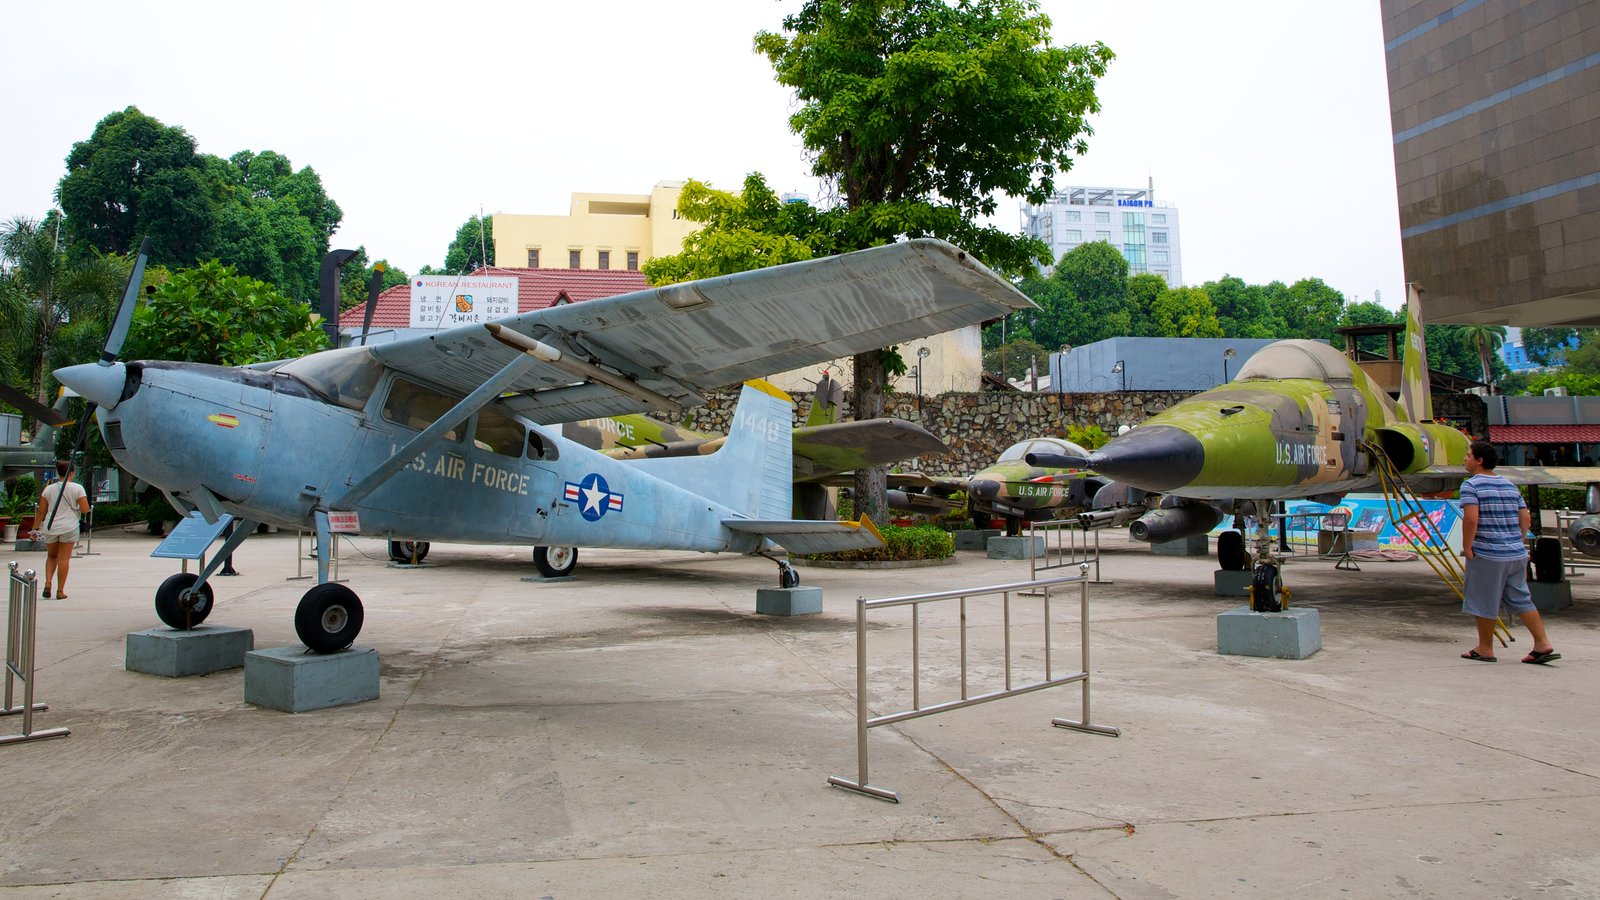 War Remnants Museum which includes aircraft and military items